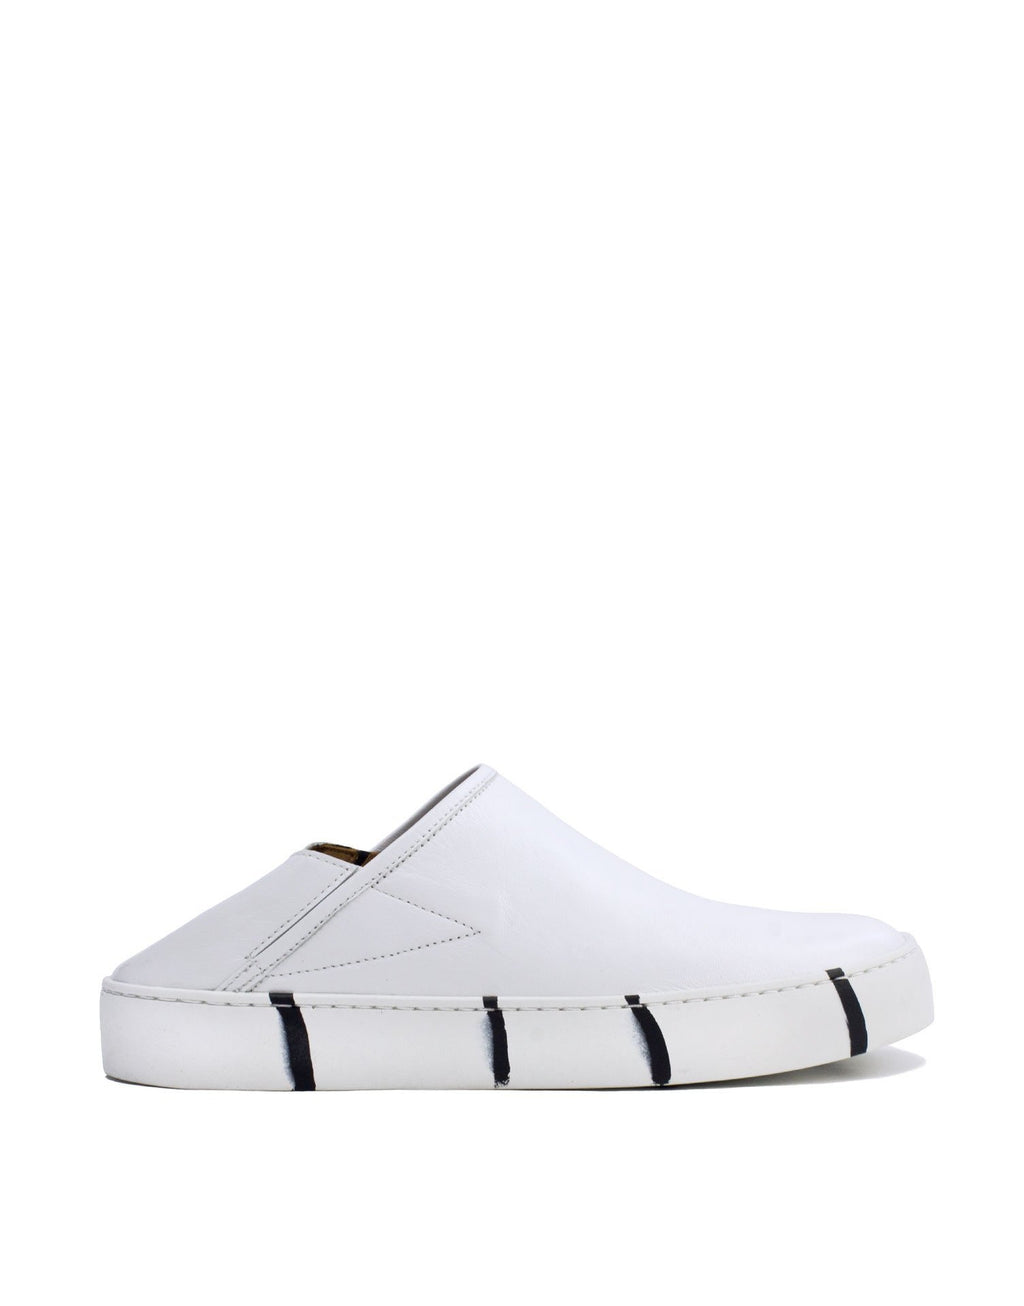 Minimal white leather slip on sneaker by Georgina Goodman With signature black striped sole